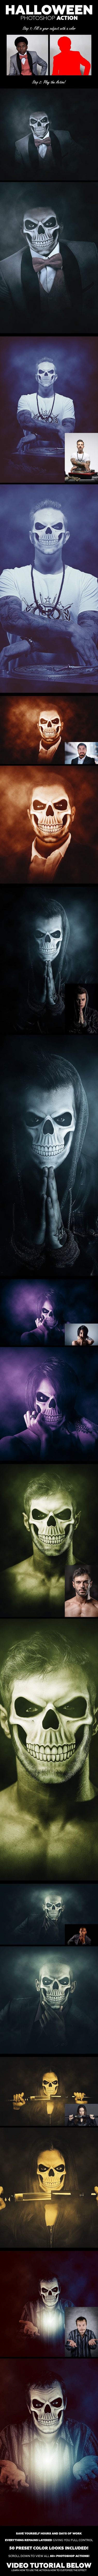 Halloween Photoshop Action - Photo Effects Actions